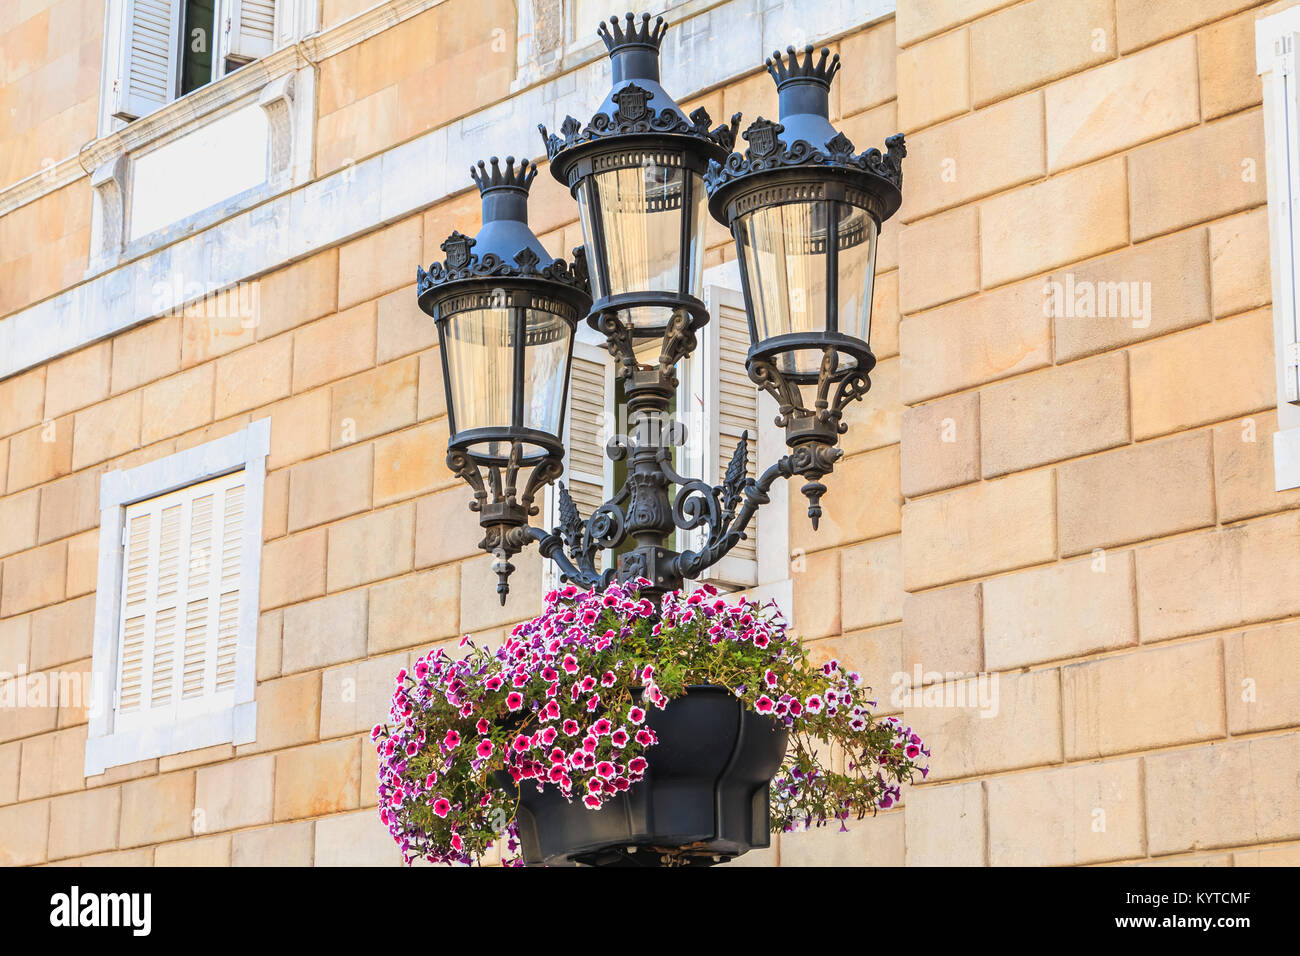 typical street lighting in the center of barcelona, spain with its spanish escutcheons - Stock Image